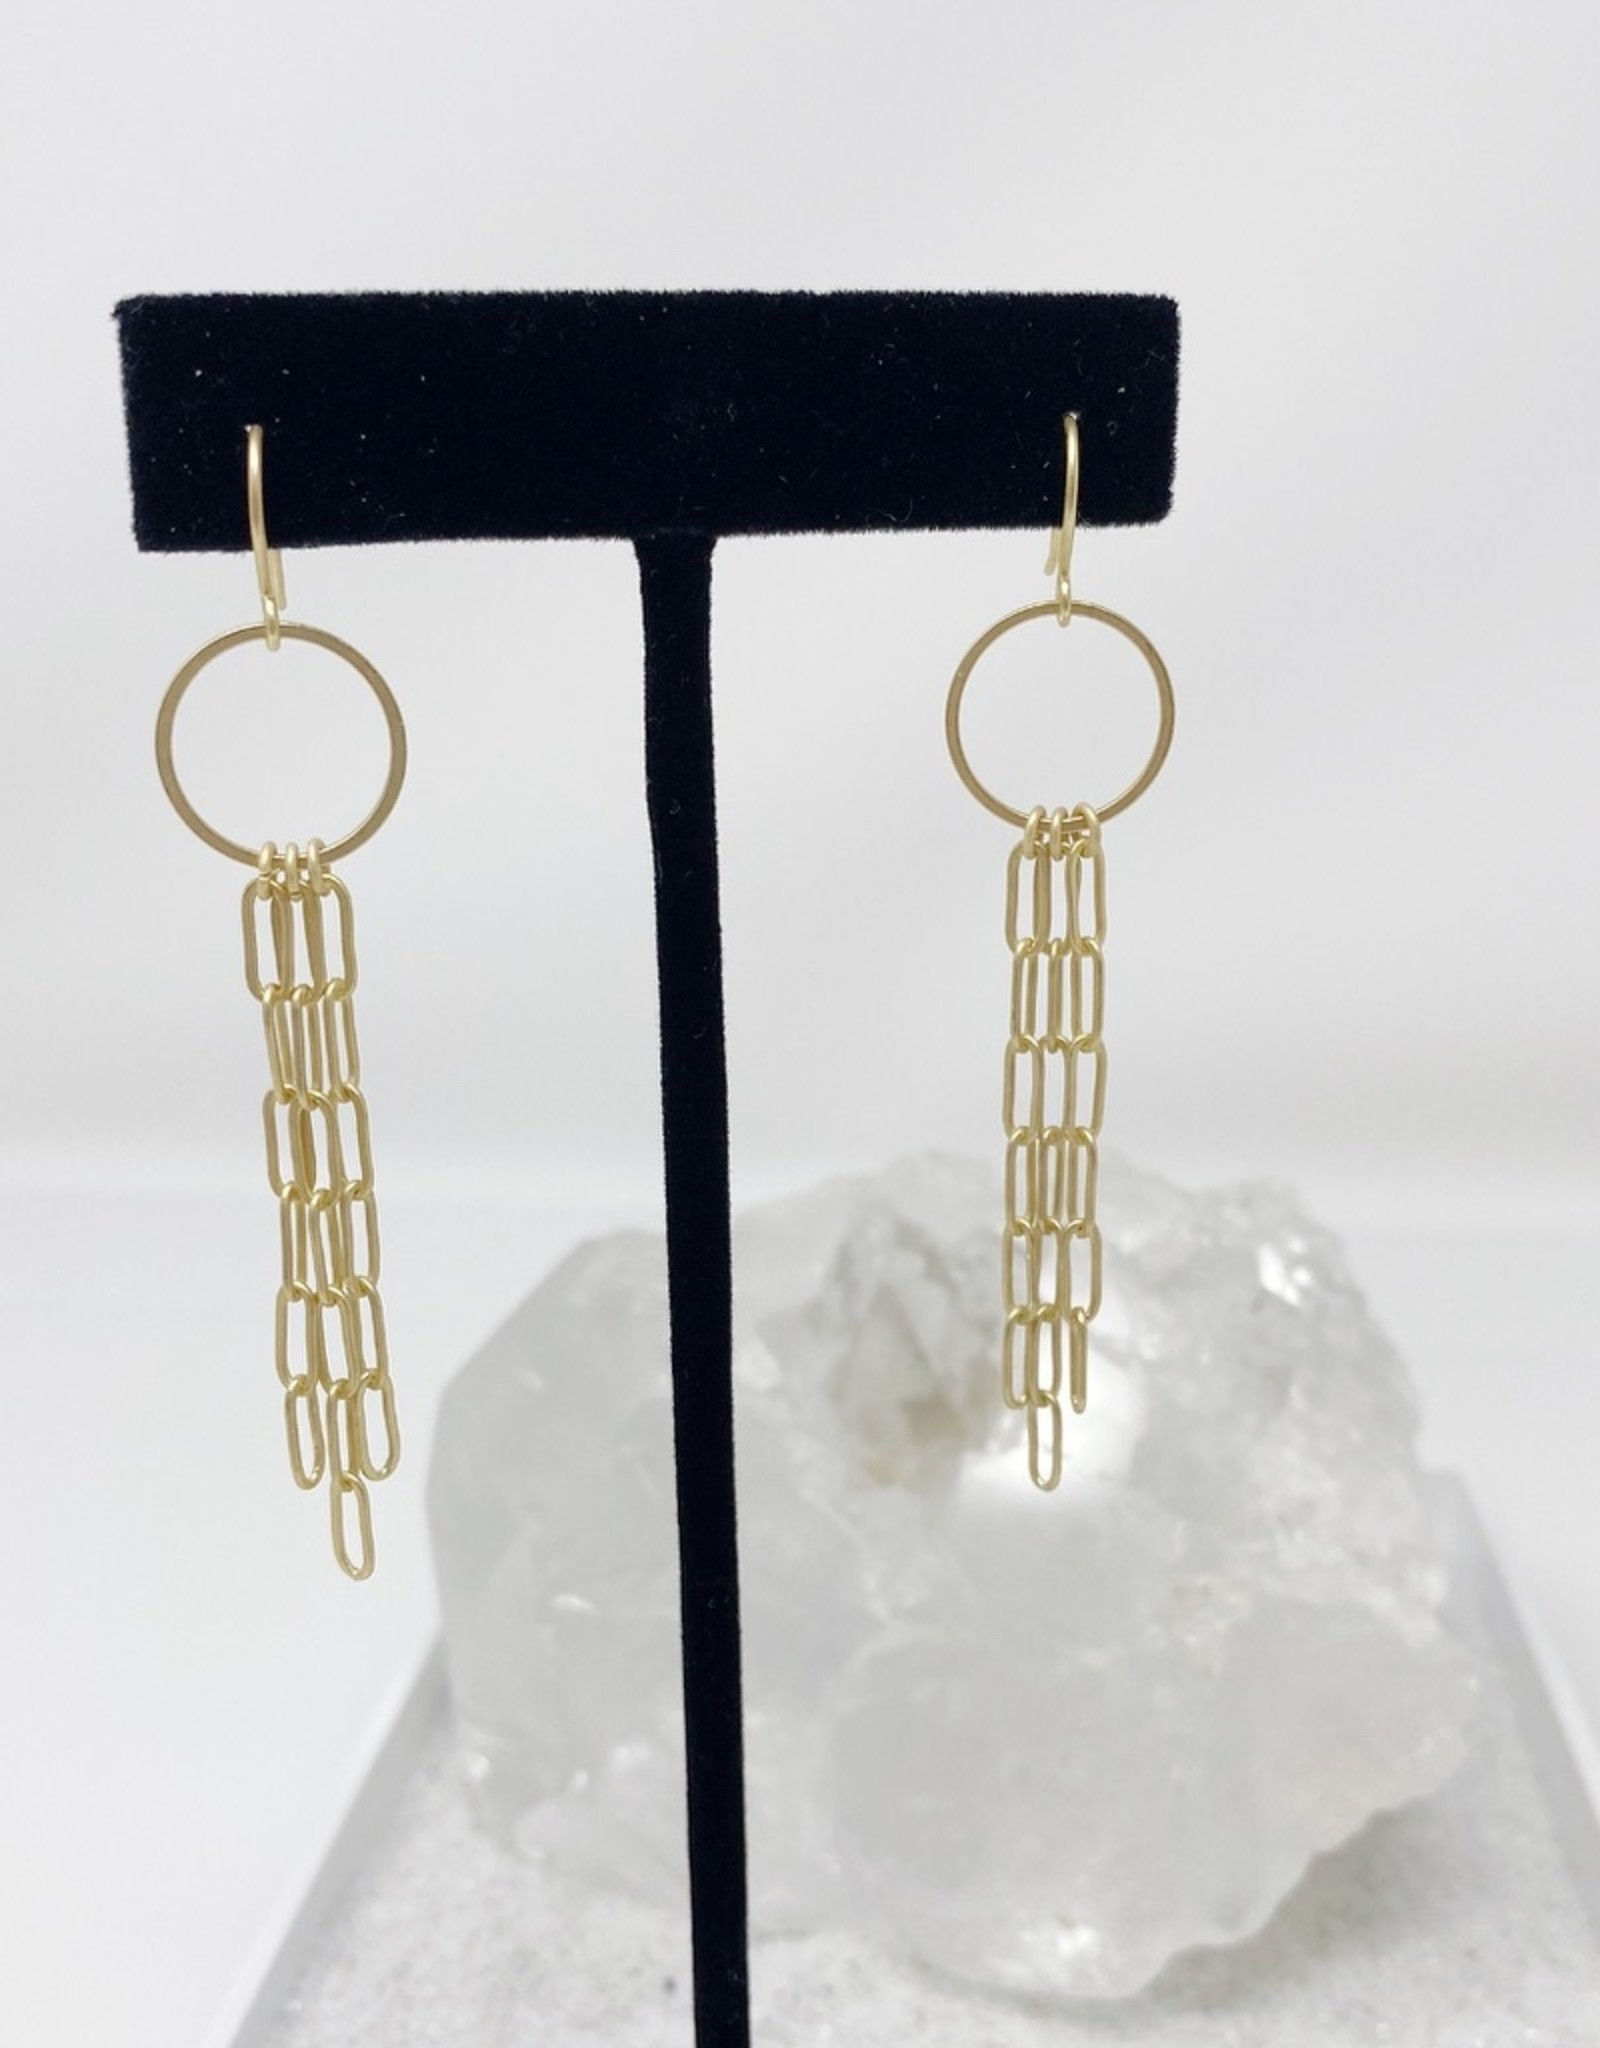 Matte gold ring and chain earrings